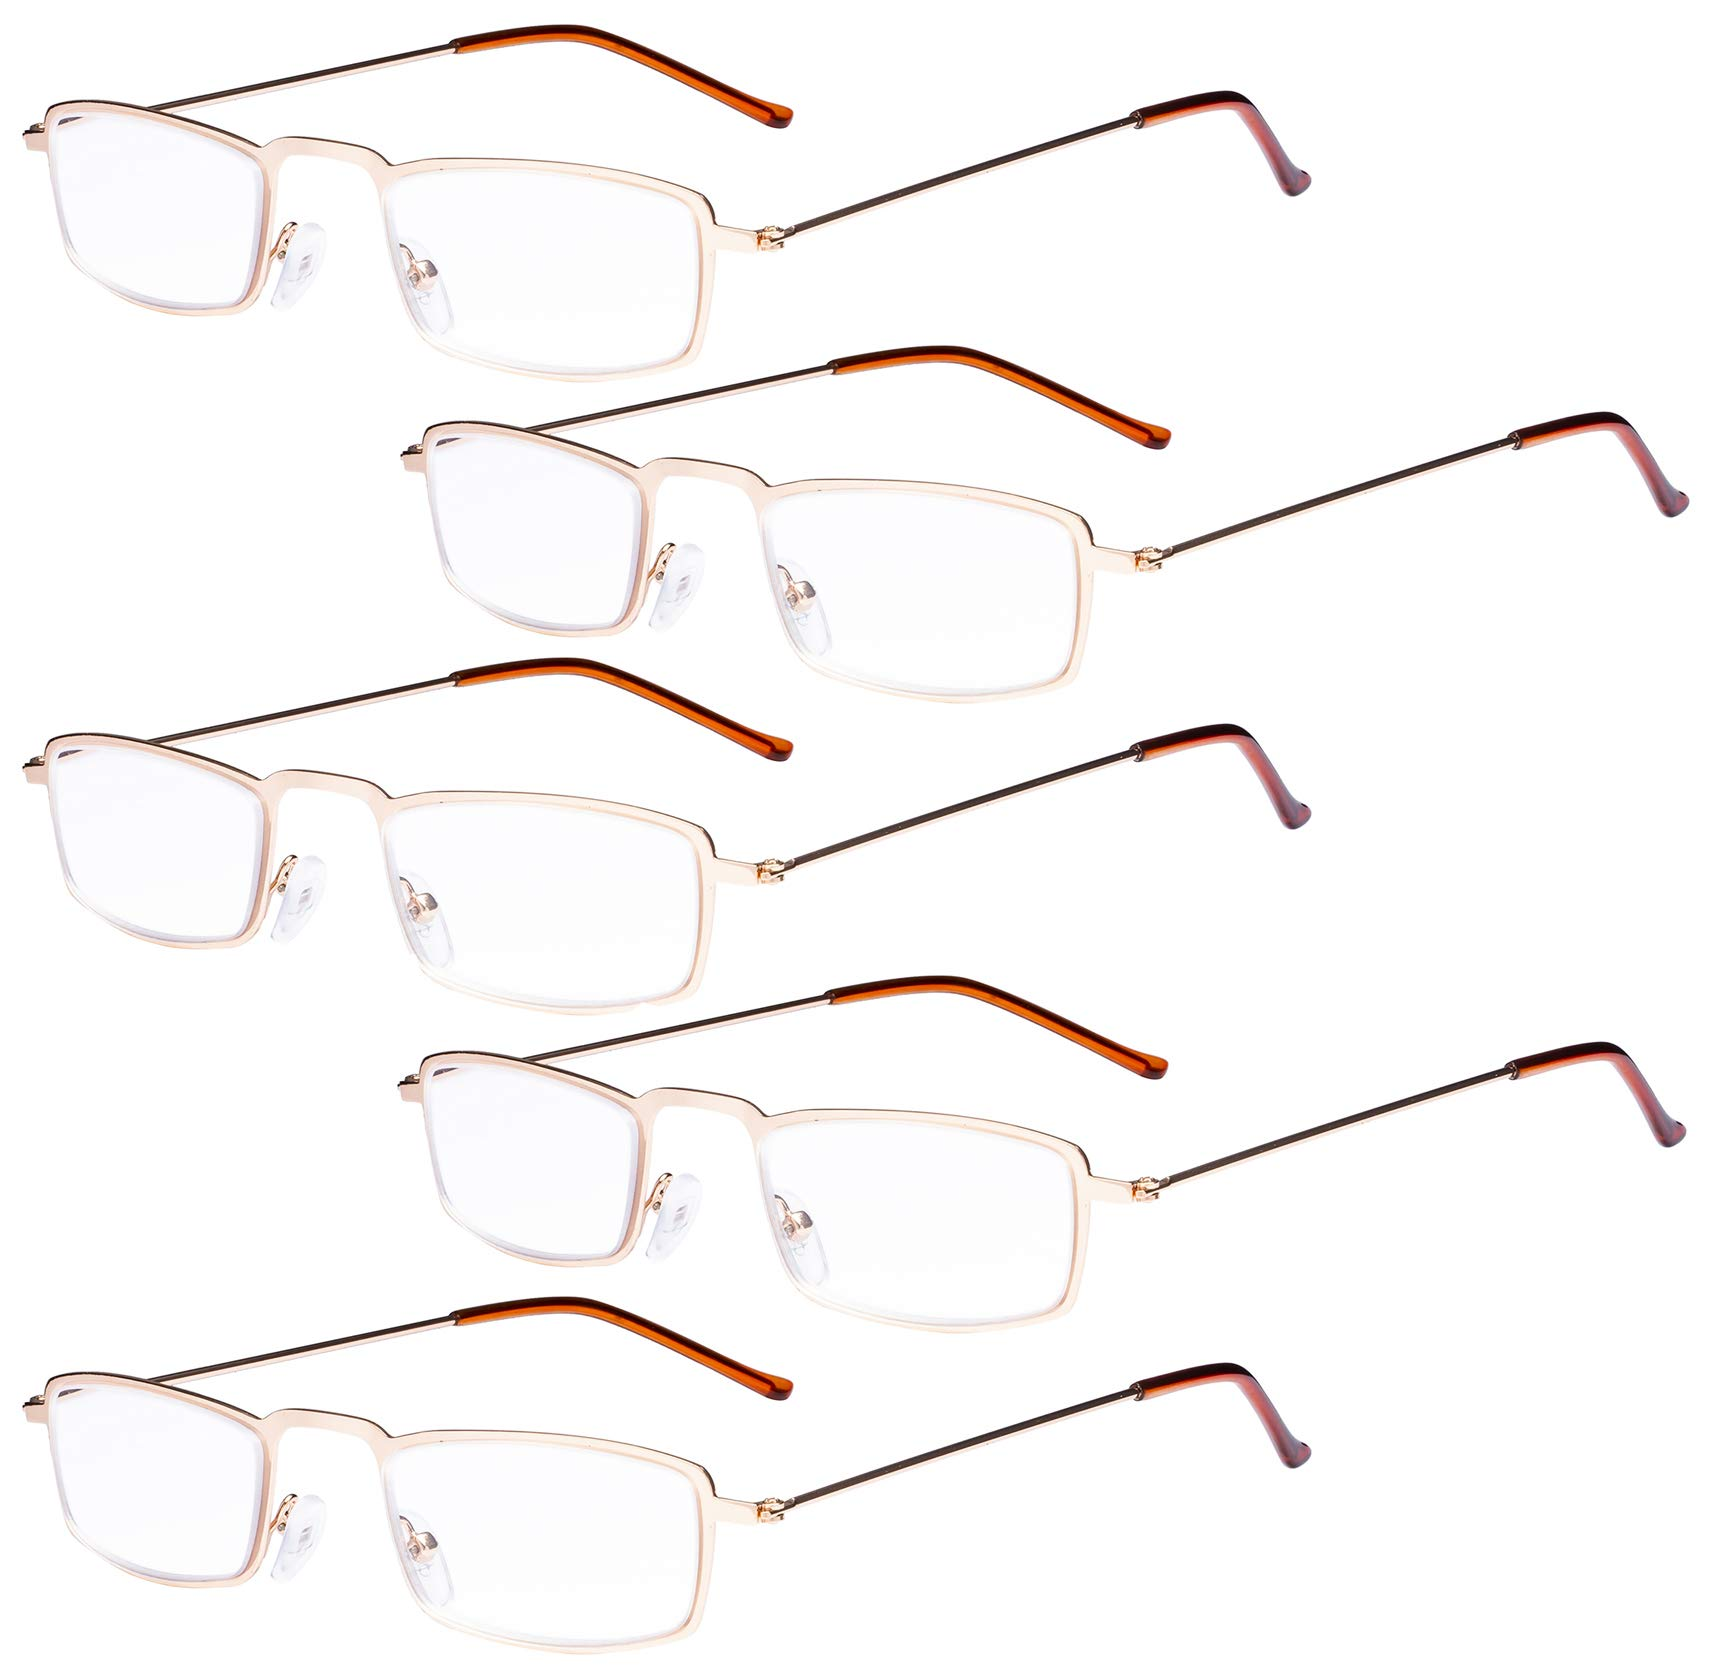 Eyekepper 5-Pack Straight Thin Stamped Metal Frame Half-Eye Style Reading Glasses Readers Gold +2.5